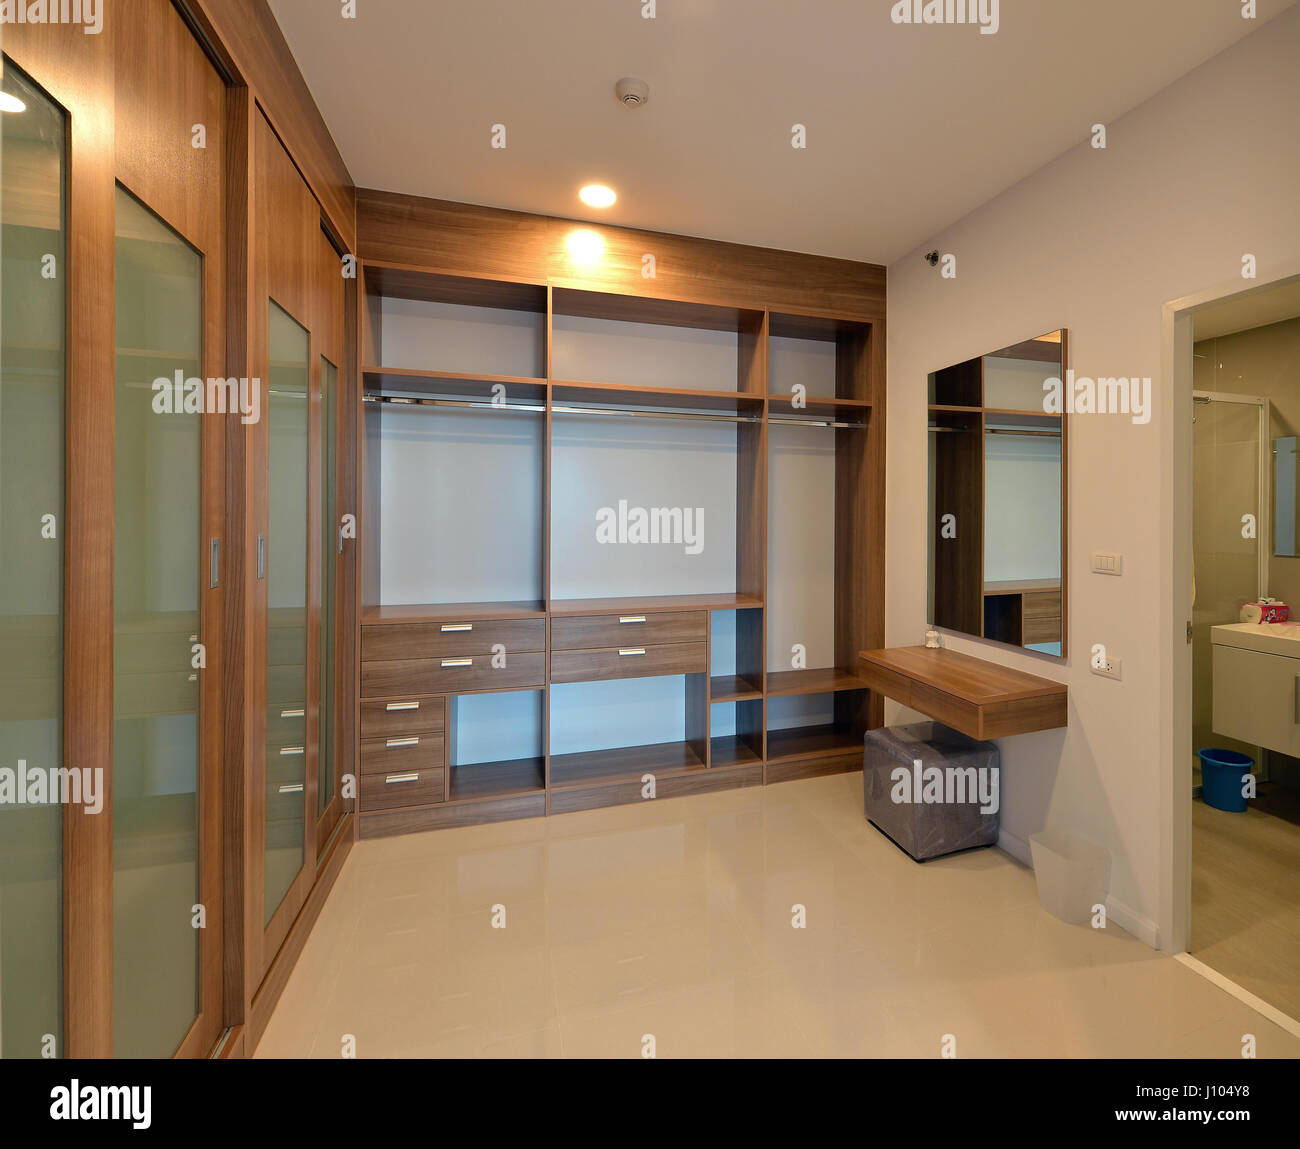 Wooden Carbinets In Dressing Room In Modern Home Interior Design - Dressing room designs in the home